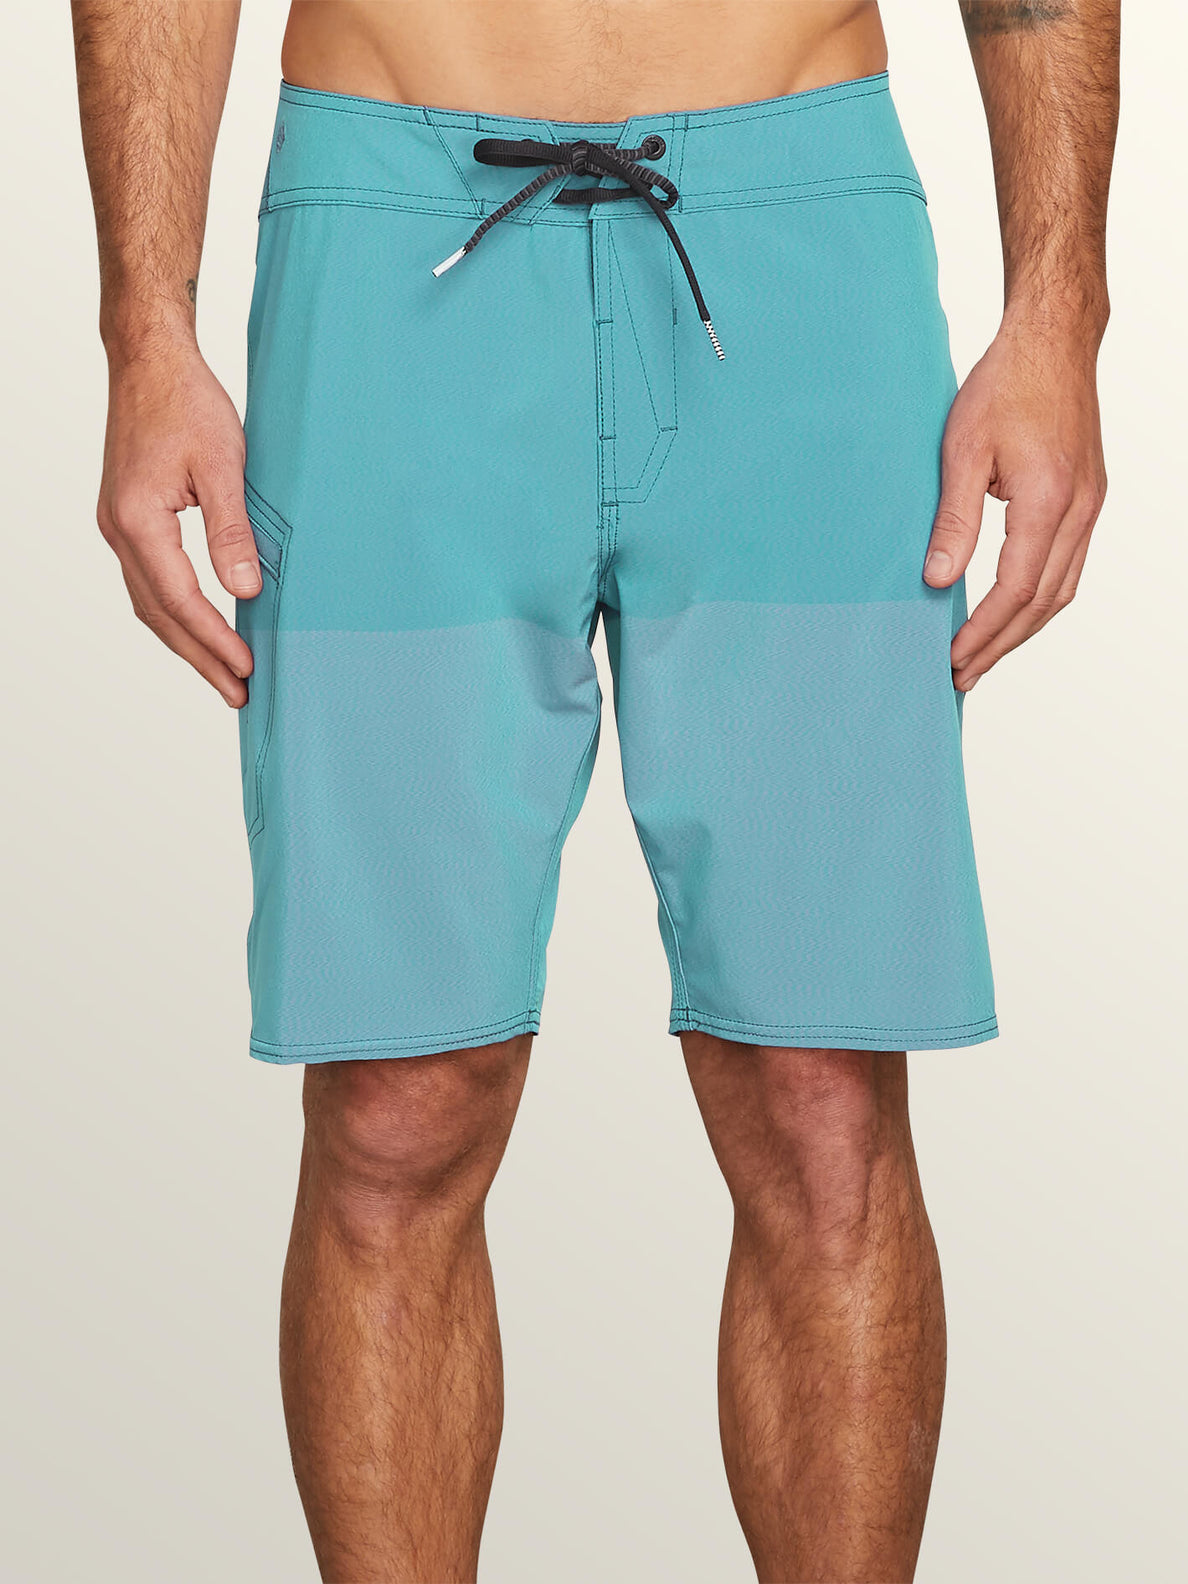 Lido Heather Mod Boardshorts In Neon Blue, Front View